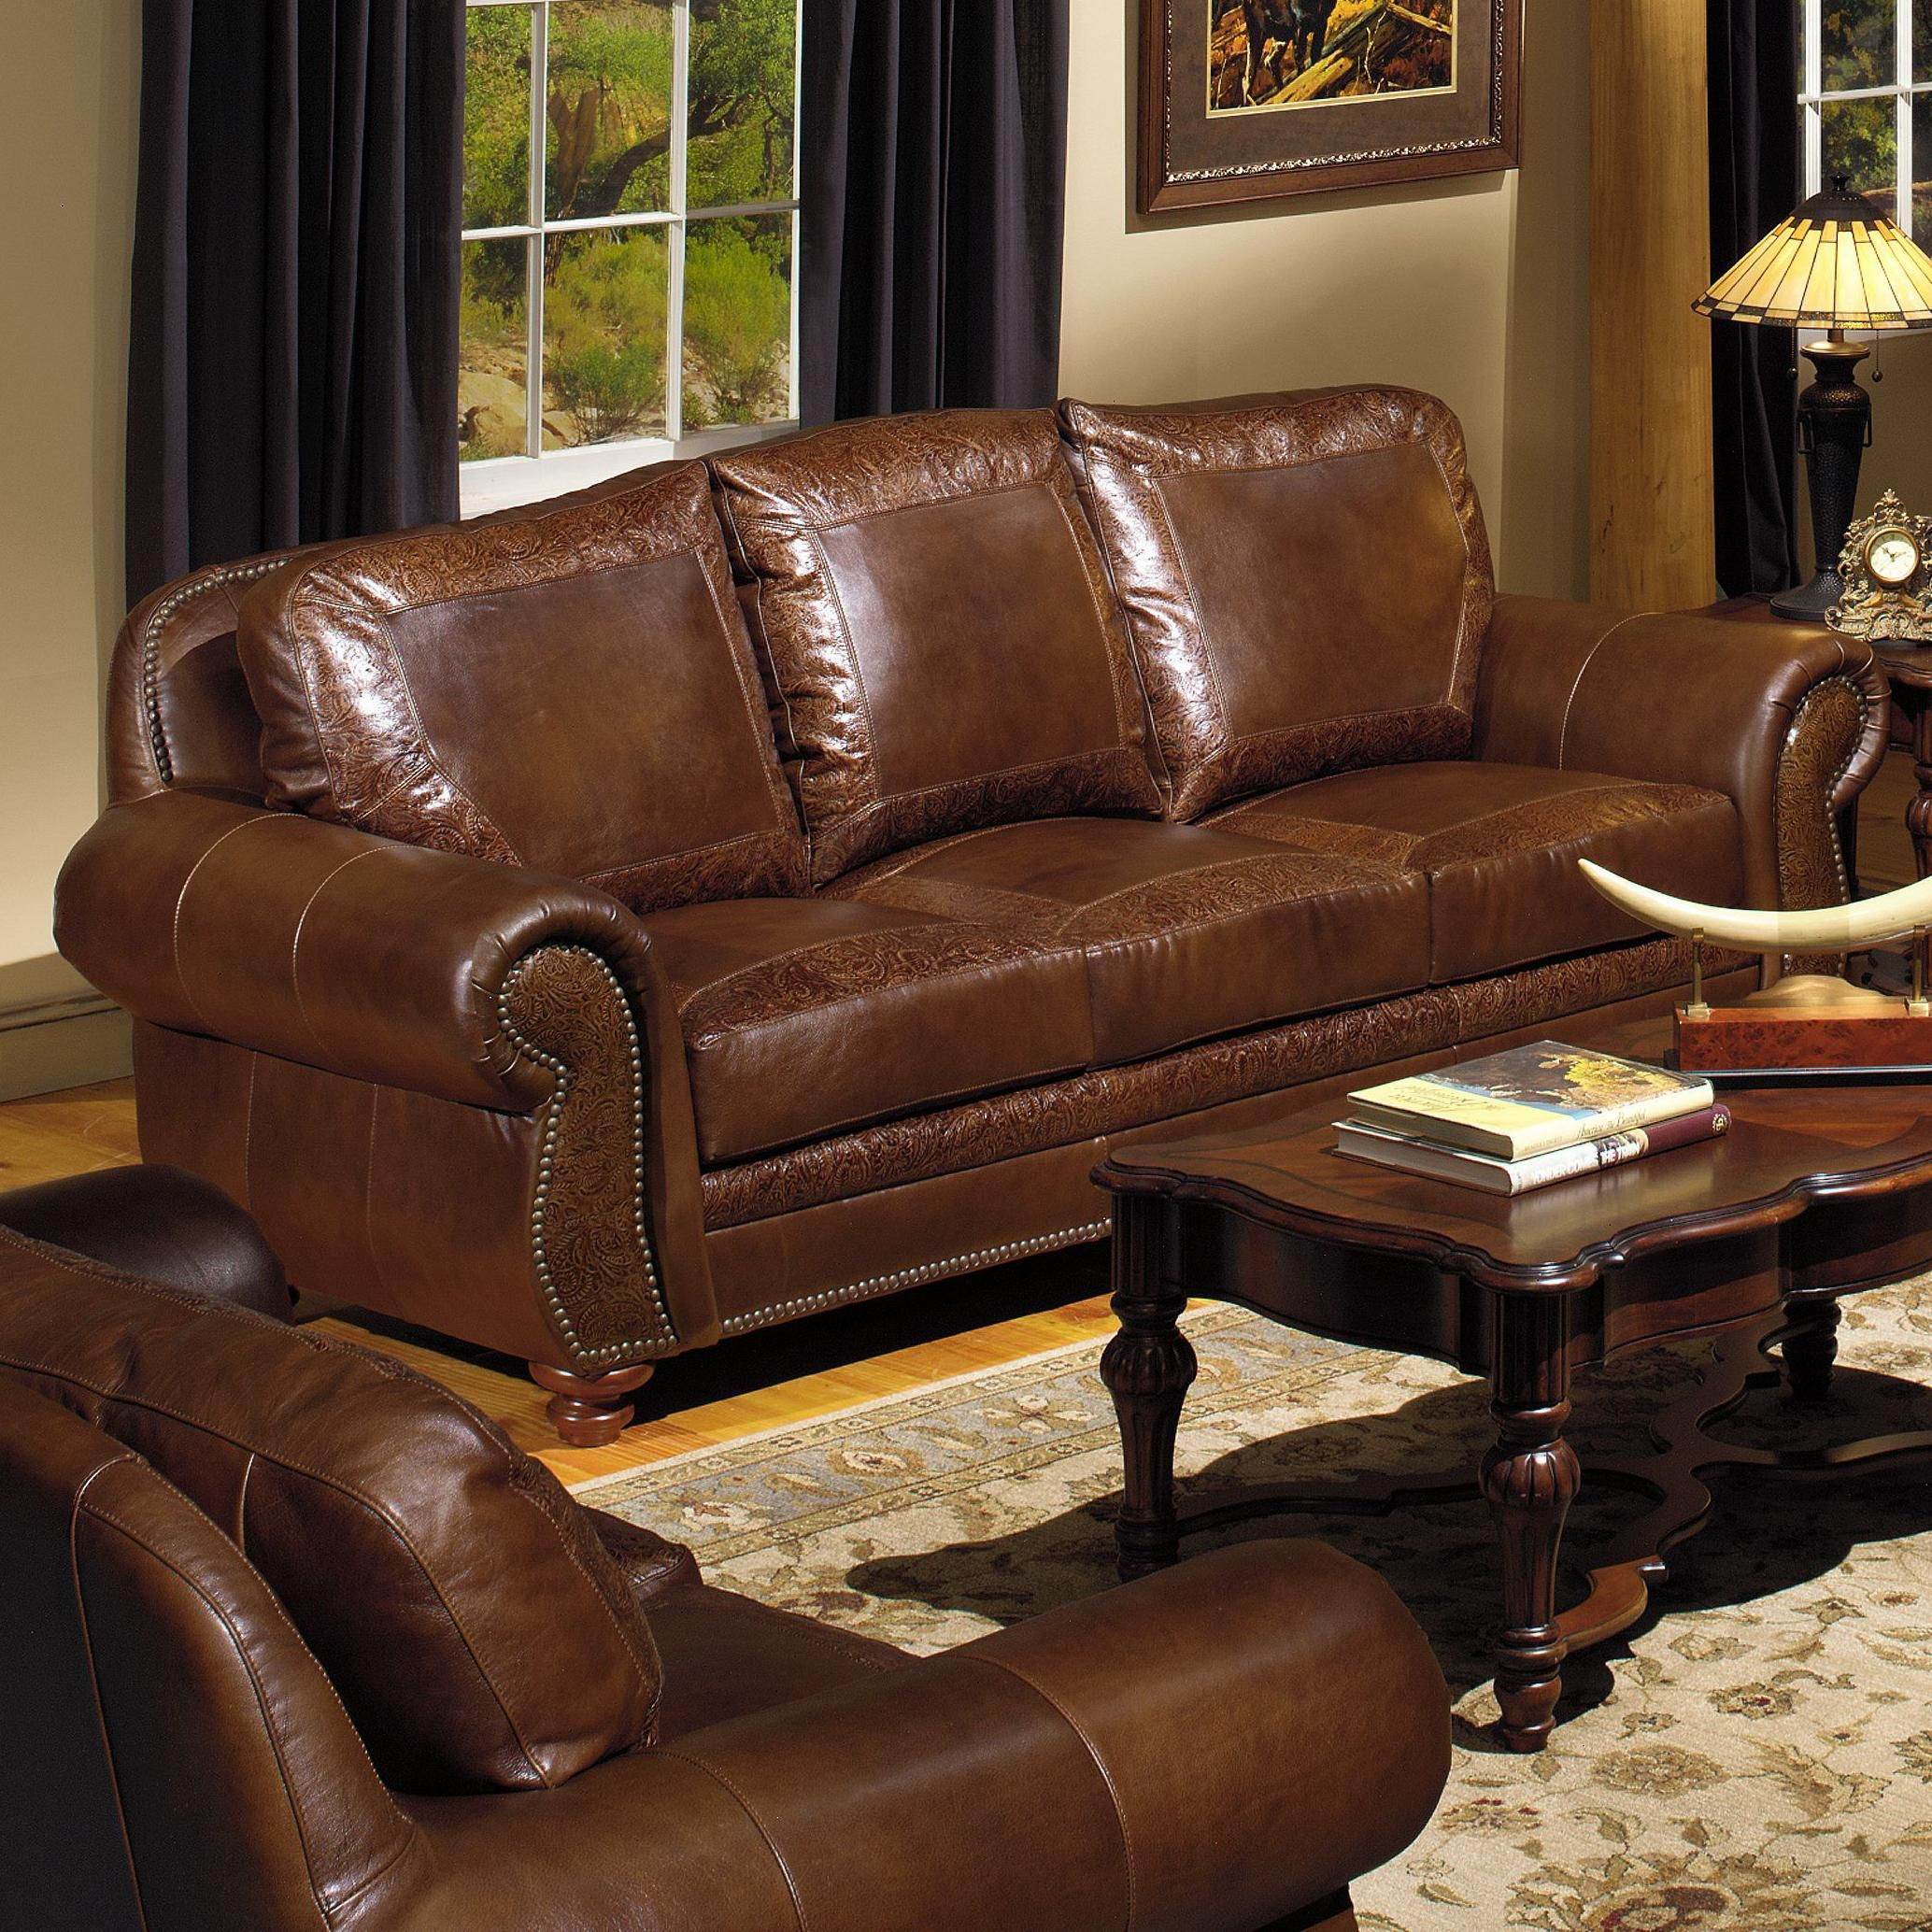 Comfy Leather Couches 8555 traditional leather sofa with nailhead trimusa premium